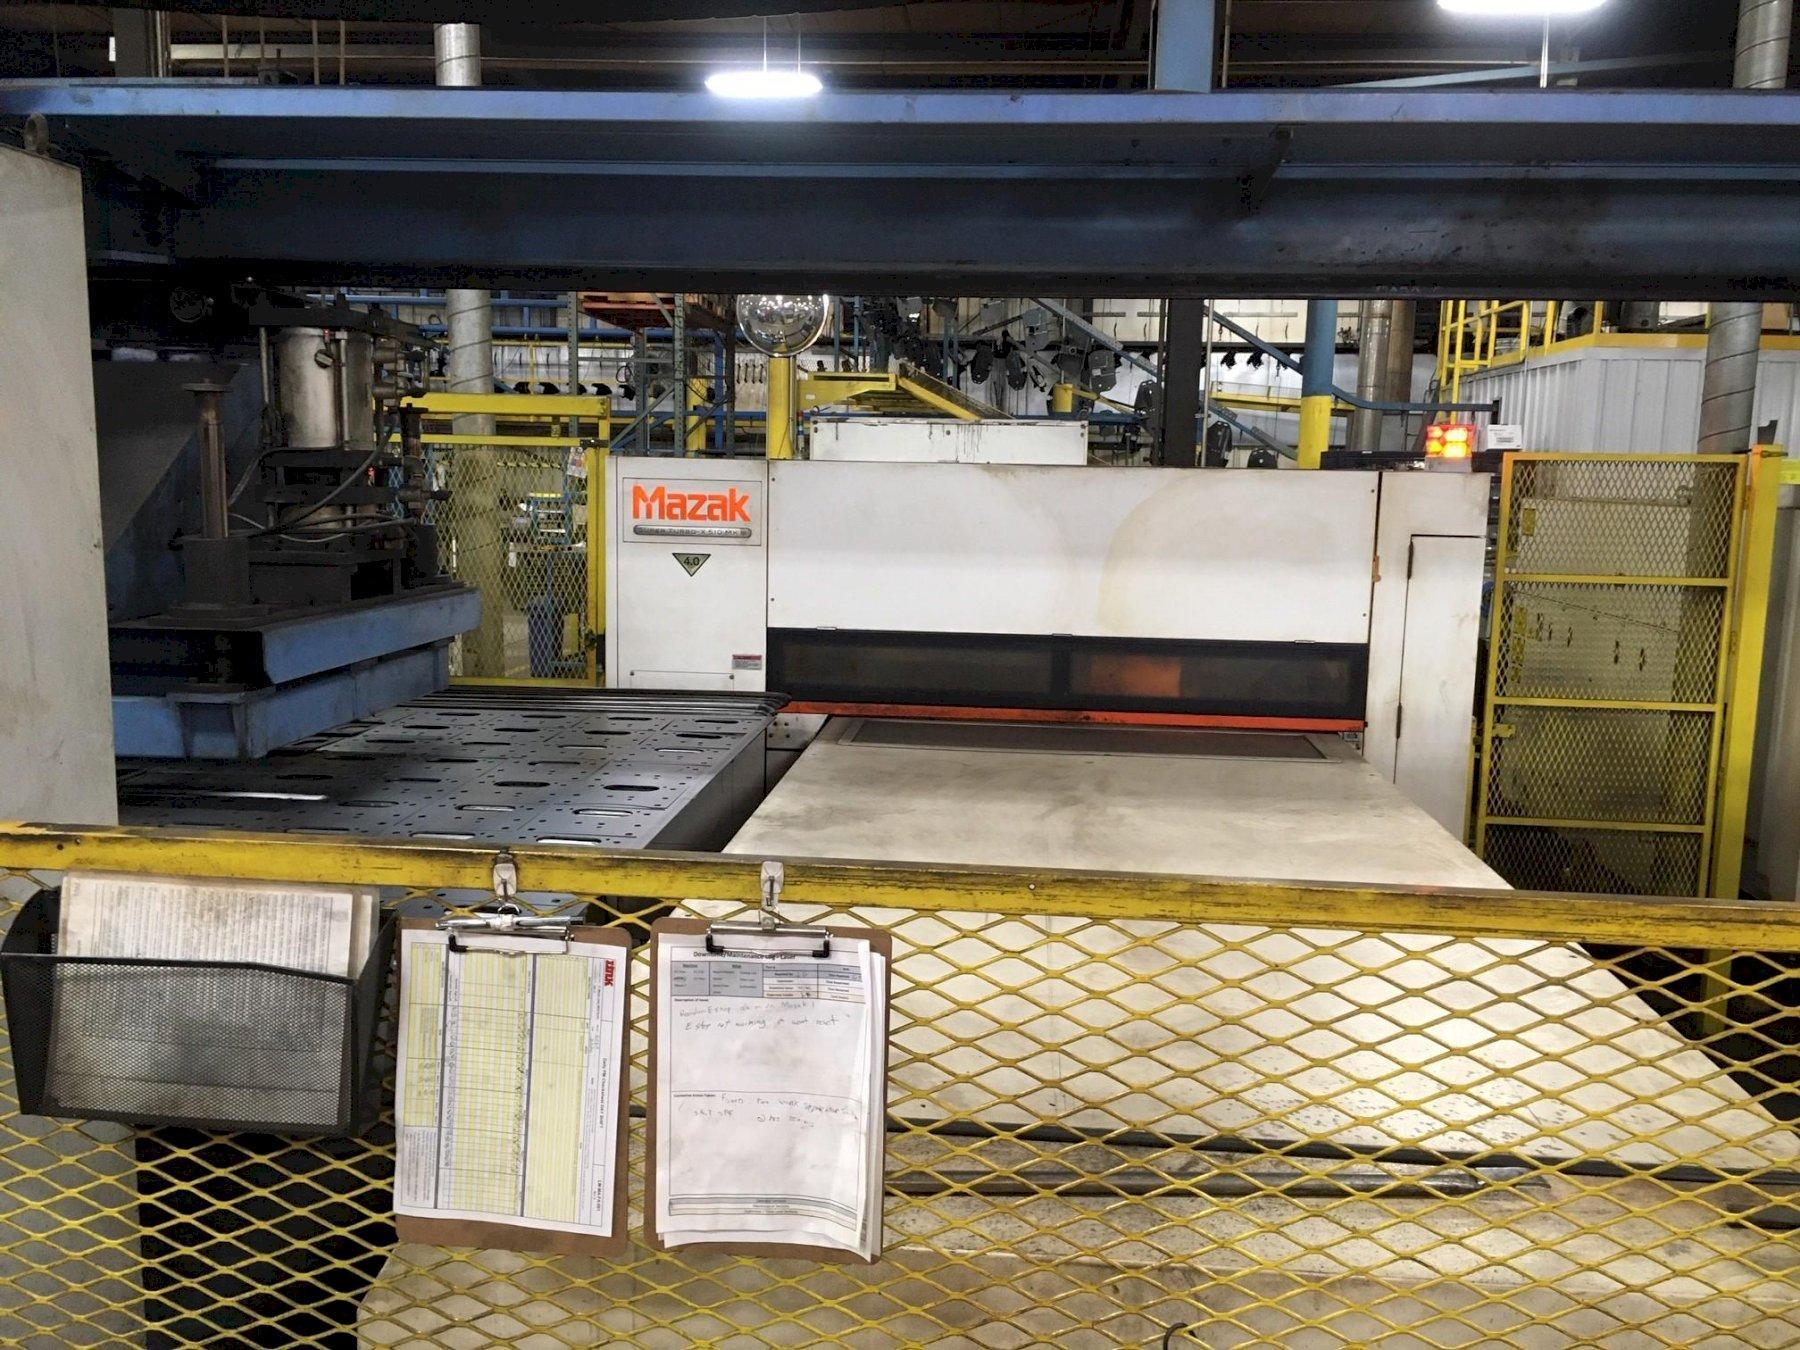 2012 Mazak STX510 Mark-III, 5x10, 4000 Watt Co2 CNC Laser